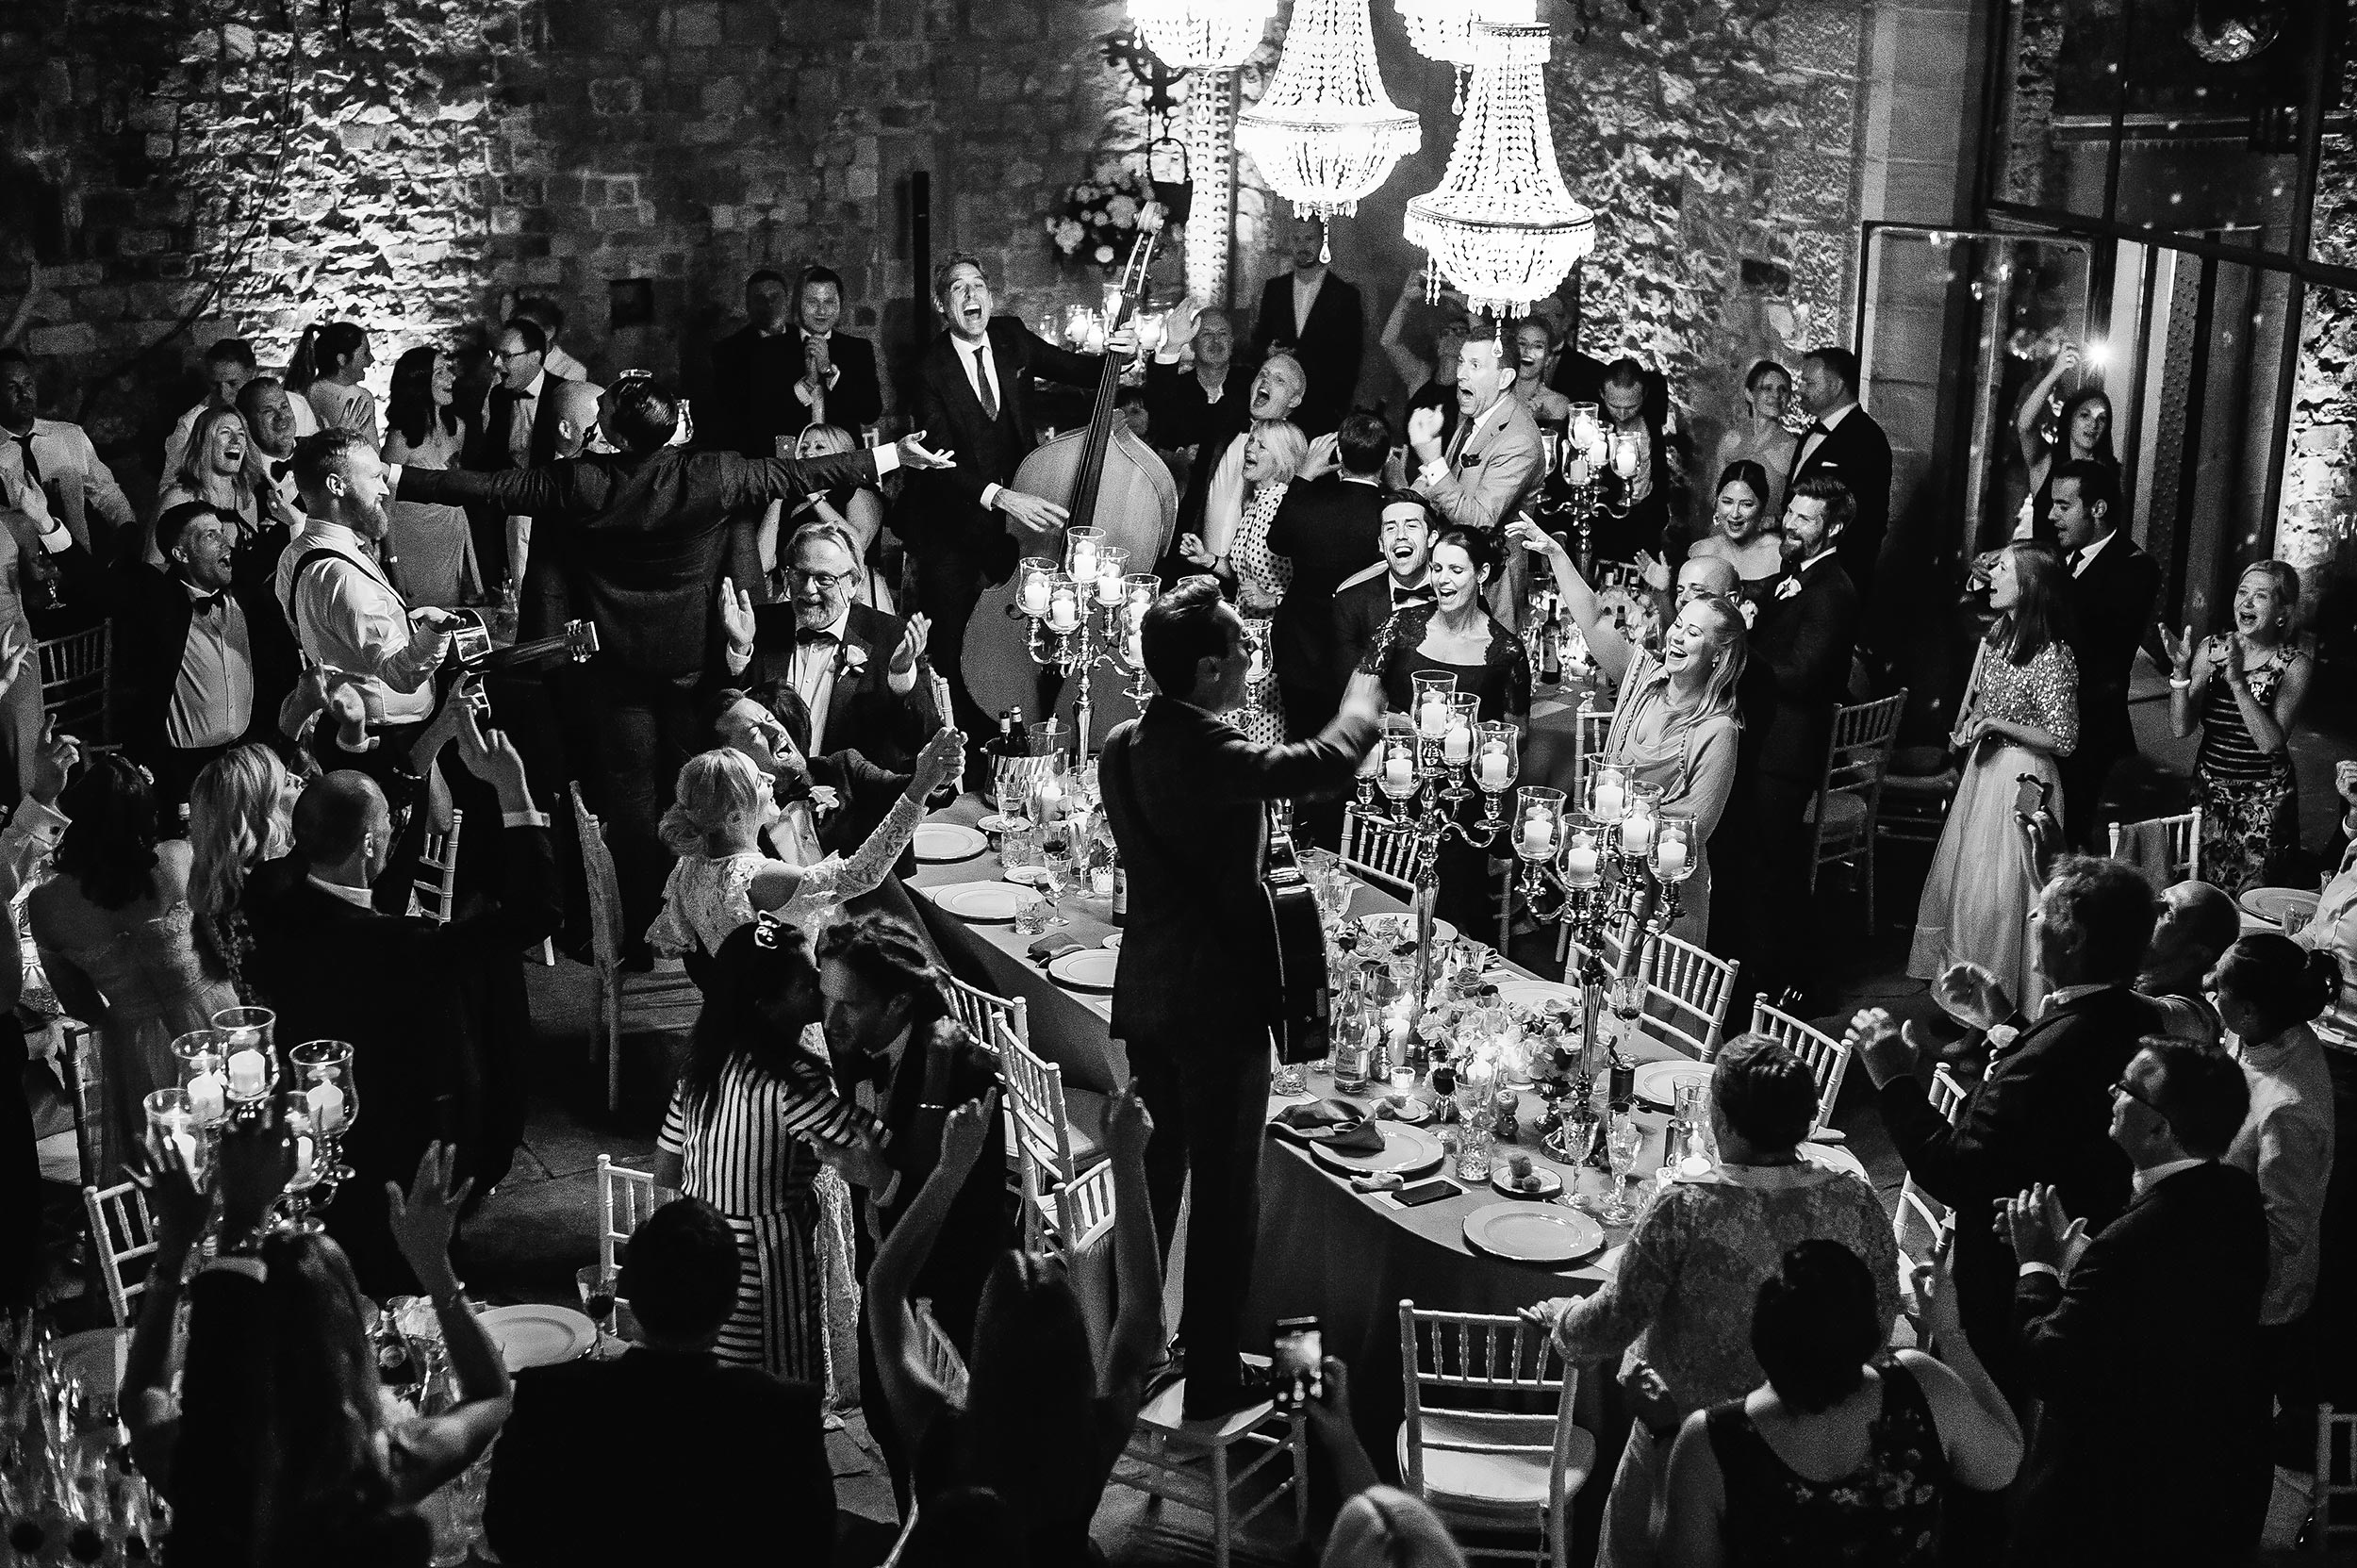 wedding-reception-dancing-live-music-band-the-london-essentials-black-and-white-candid-photographer-Alessandro-Avenali.jpg